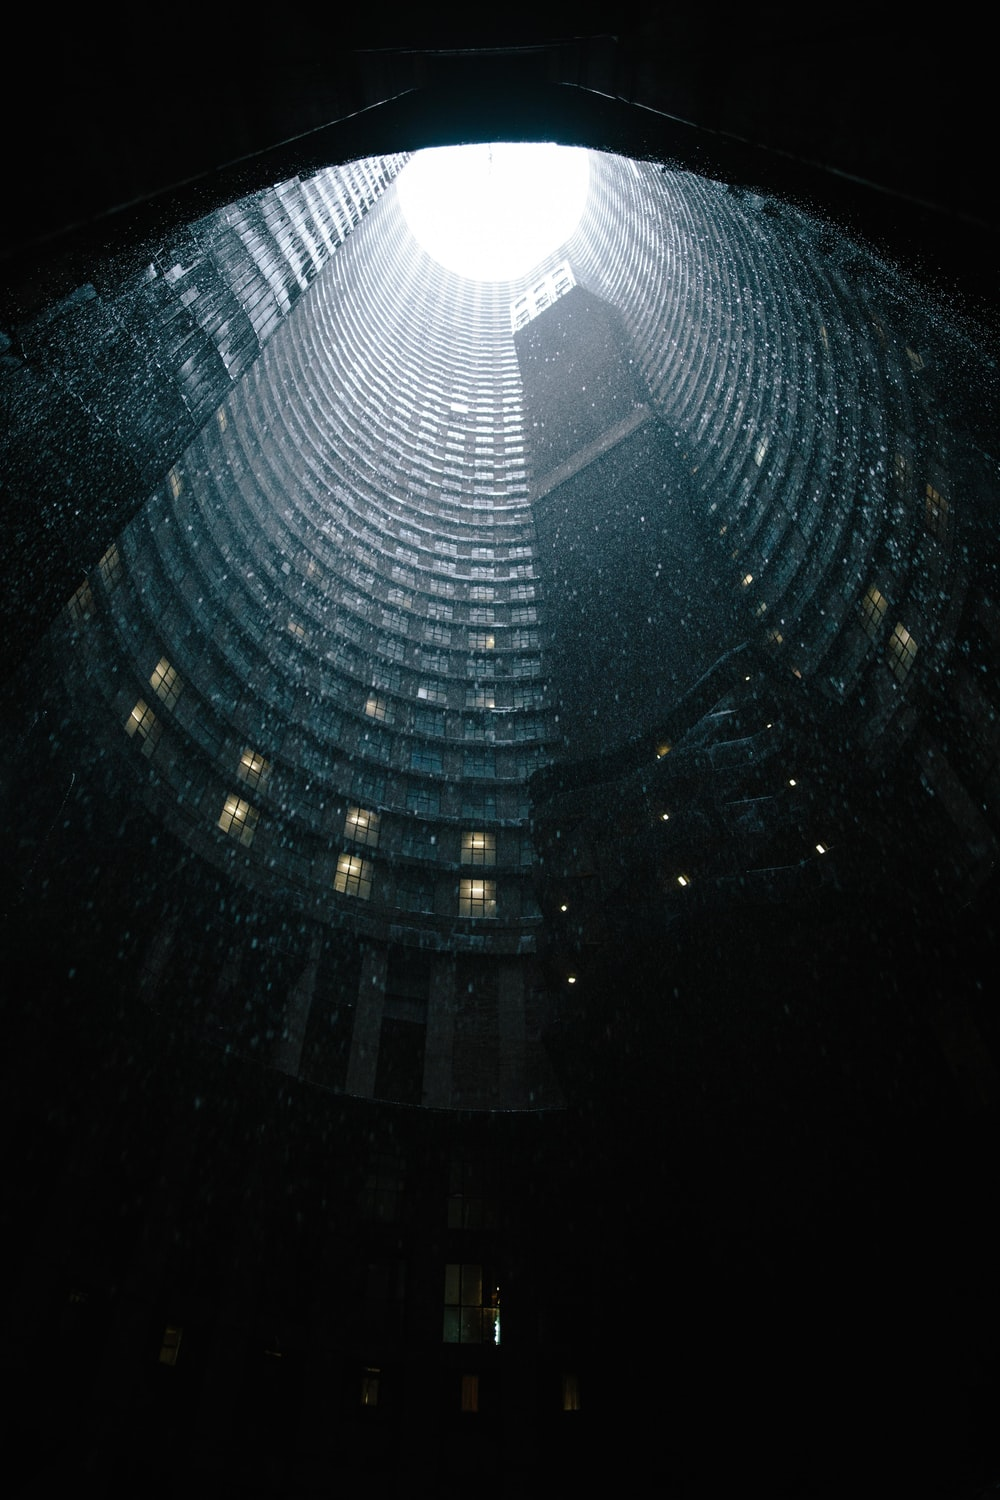 Iphone wallpapers 47 best free iphone wallpaper wallpaper rock a dramatic shot of the core of the ponte city tower in johannesburg under heavy rain thecheapjerseys Gallery